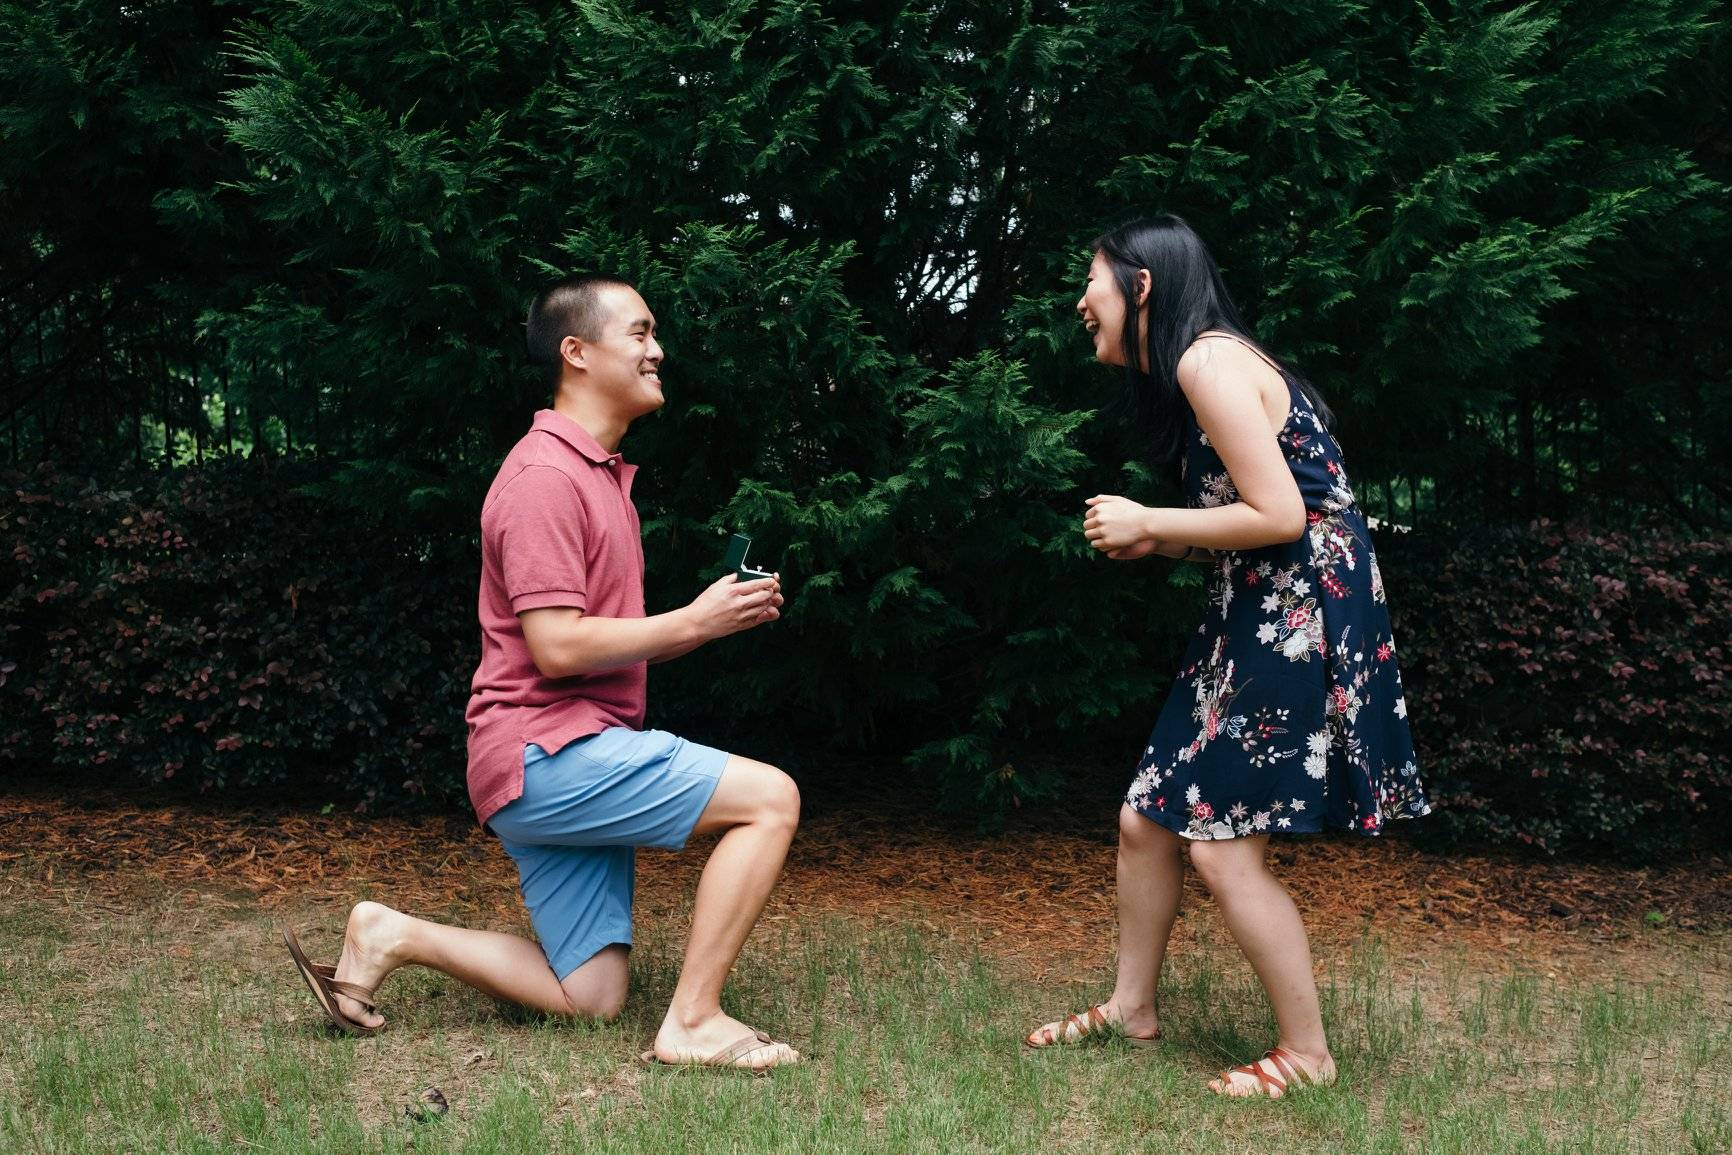 Daniel Proposes to Georgia with Schiffman's Engagement Ring